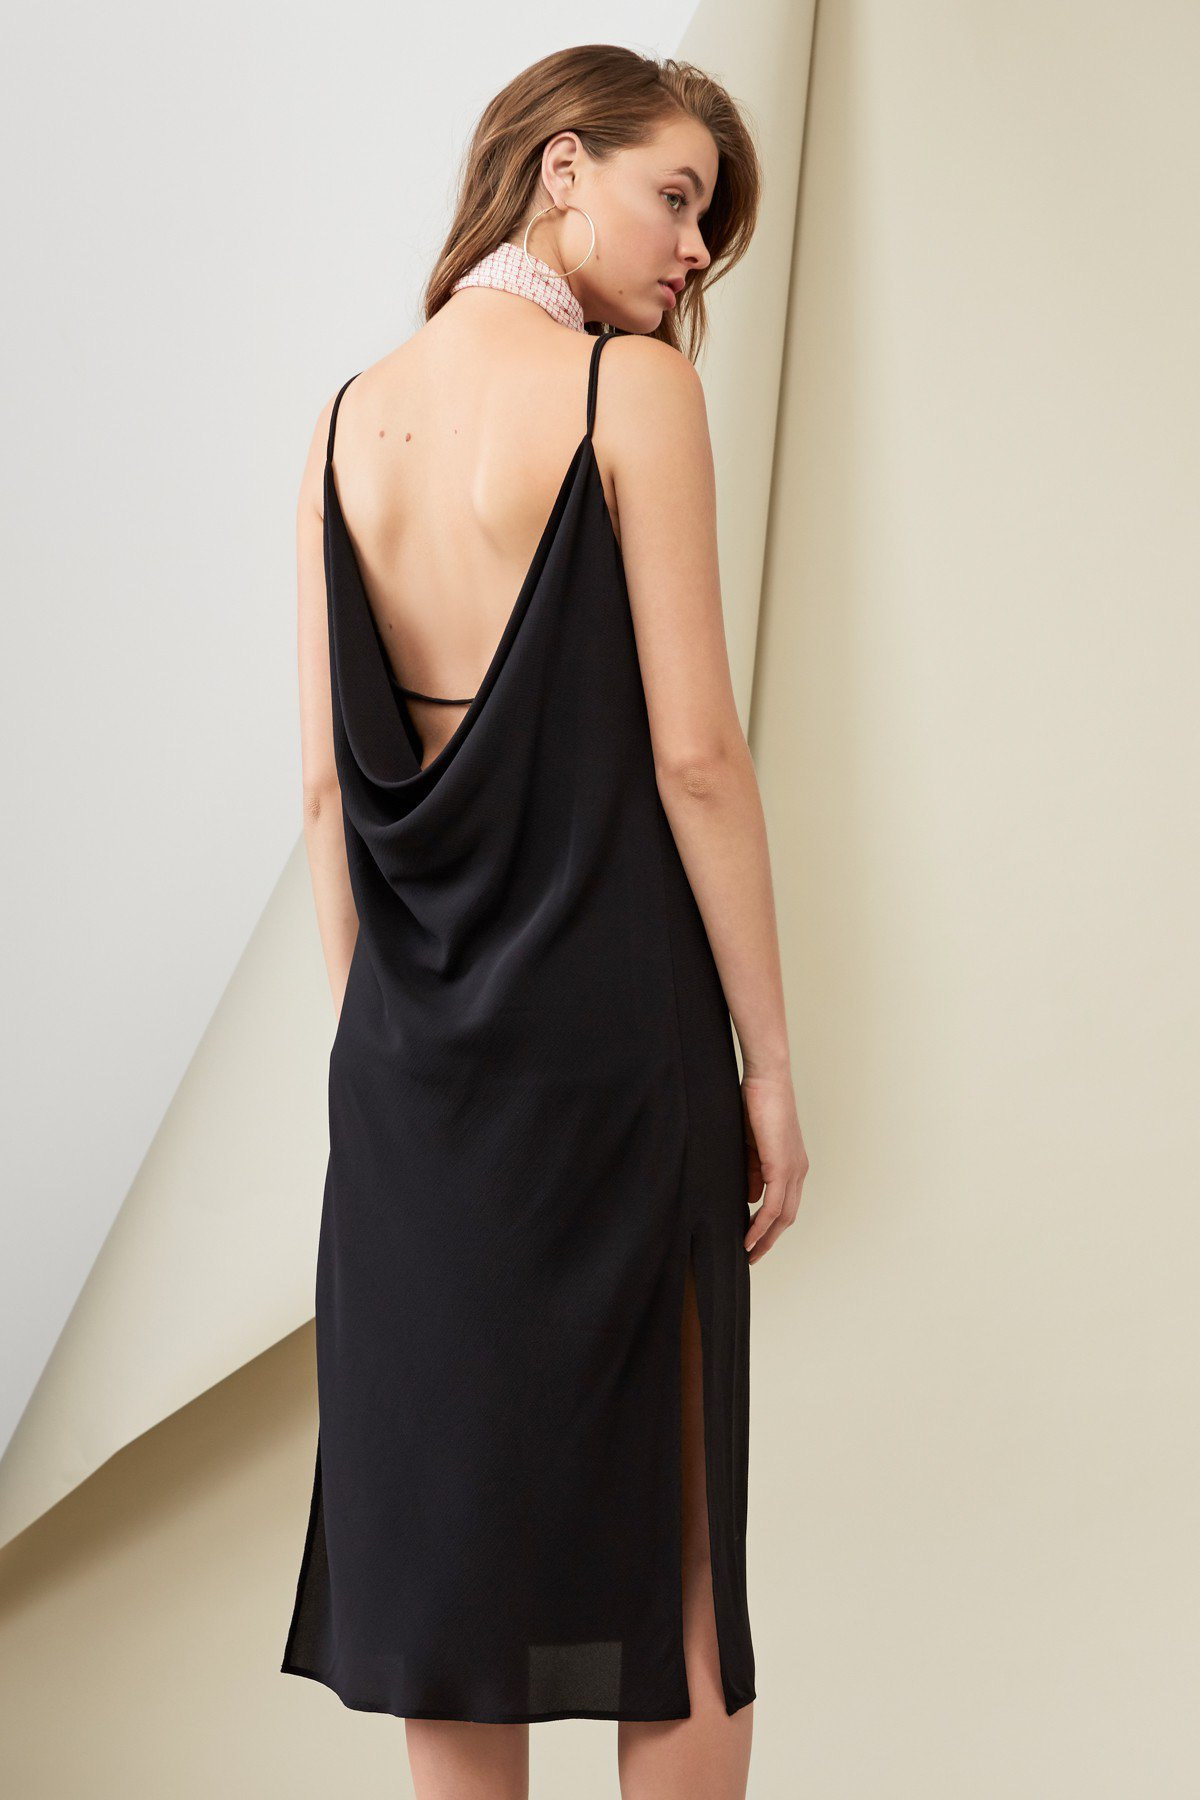 fk_adele_midi_dress_black_g_0282-1.jpg